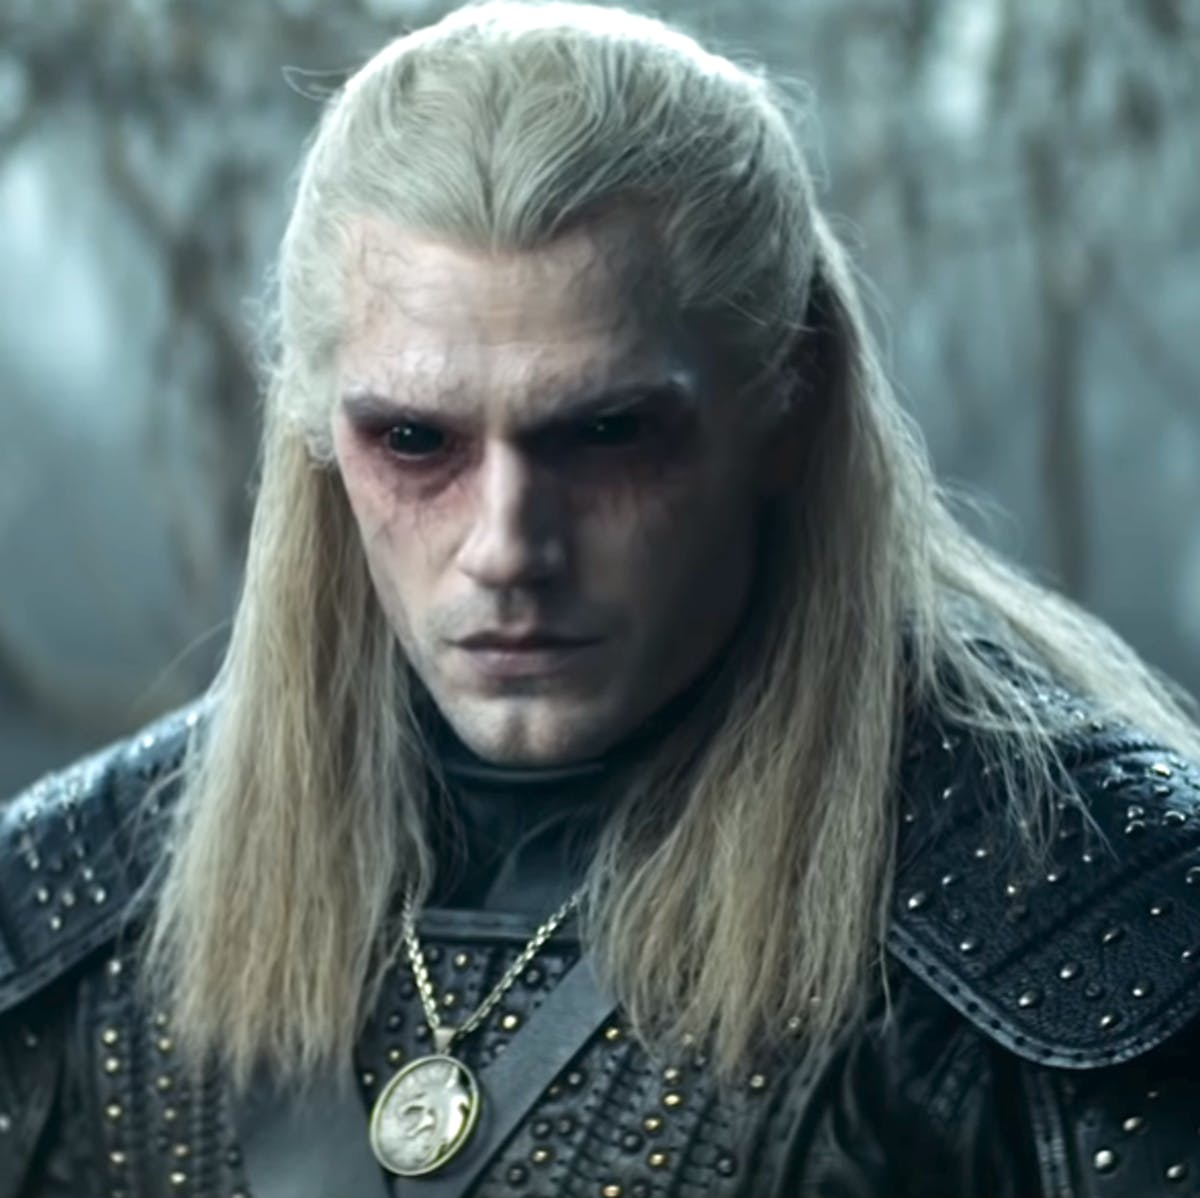 A surprising 'Game of Thrones' character inspired Henry Cavill's 'Witcher'